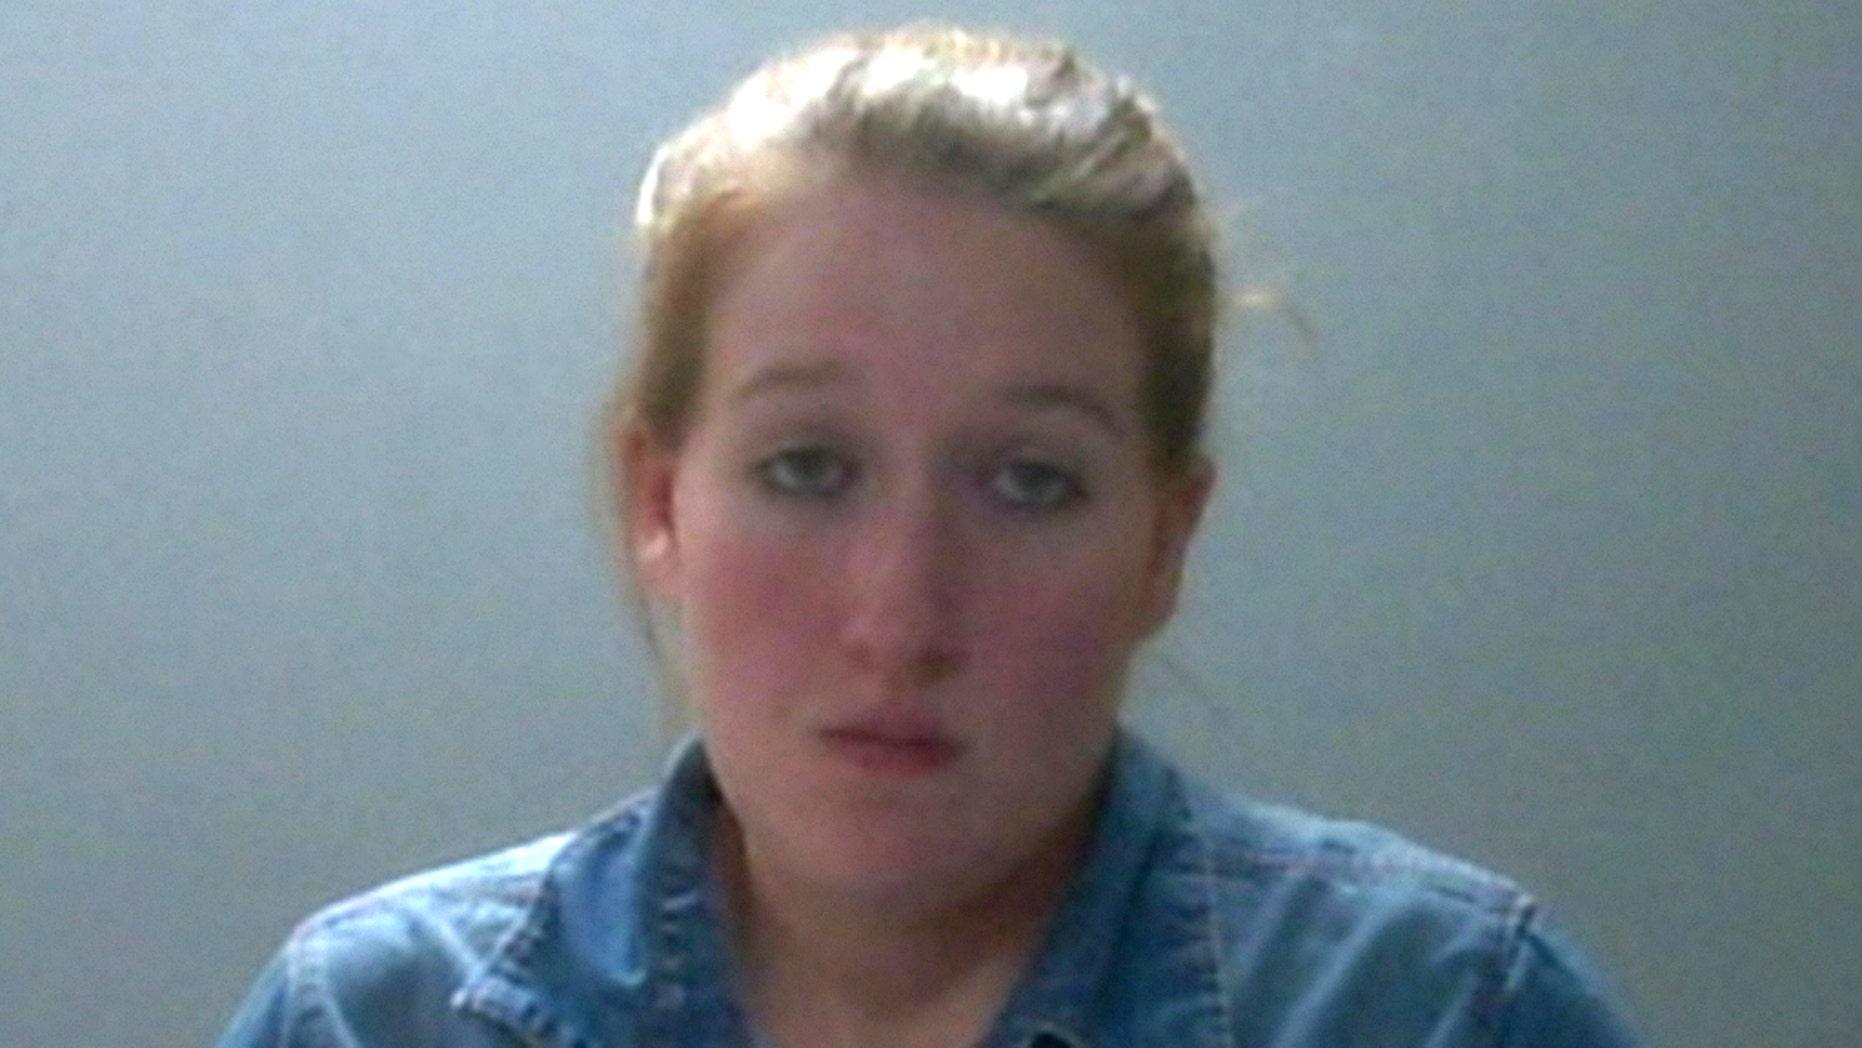 Fallon Blackwood is accused of selling rescue horses to slaughterhouses.